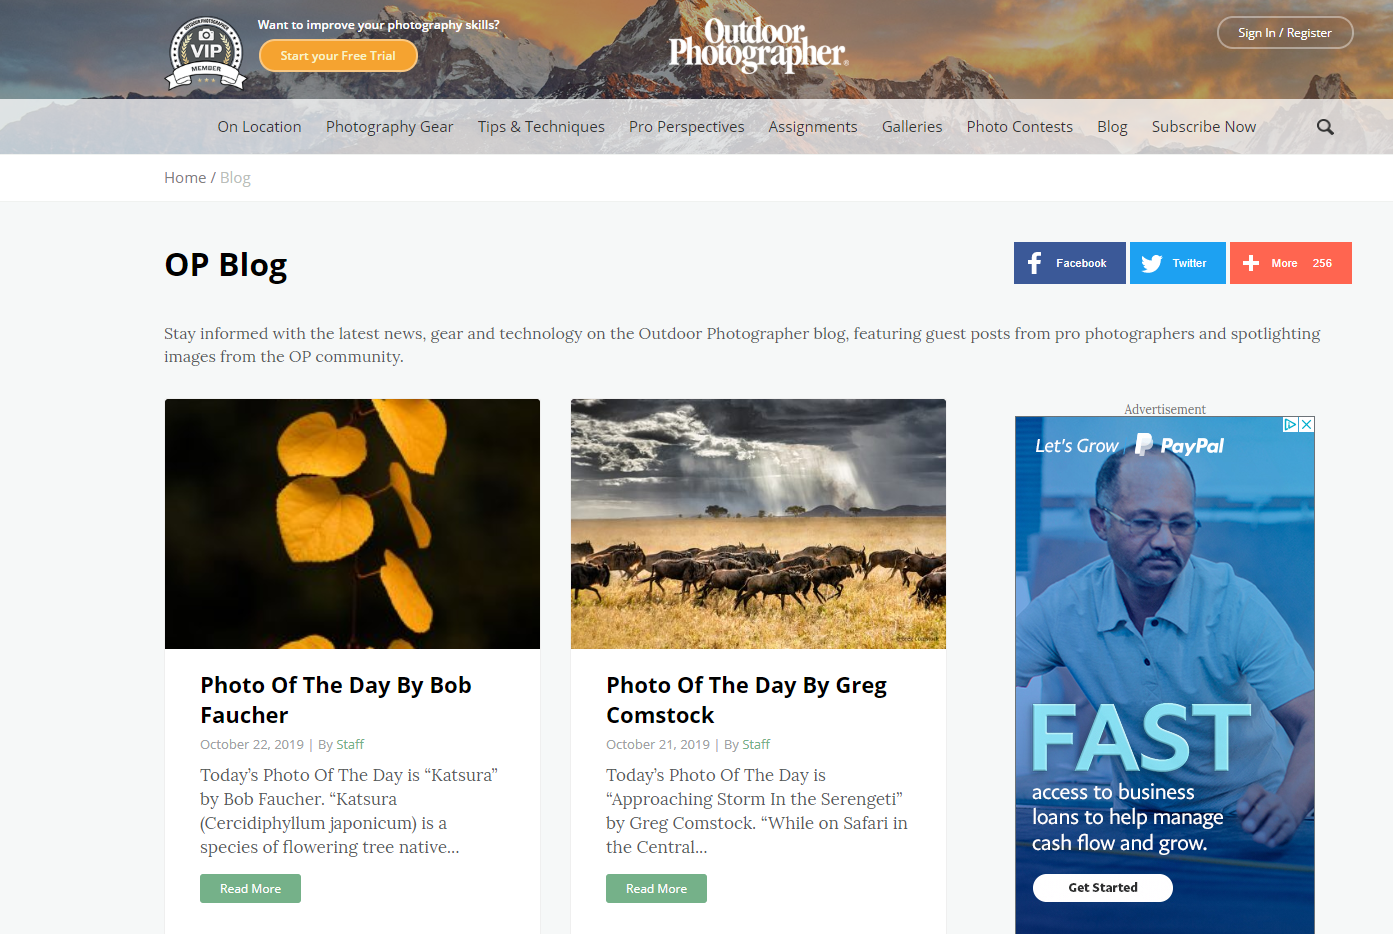 The Outdoor Photographer blog uses Google AdSense ads to help monetize its blog